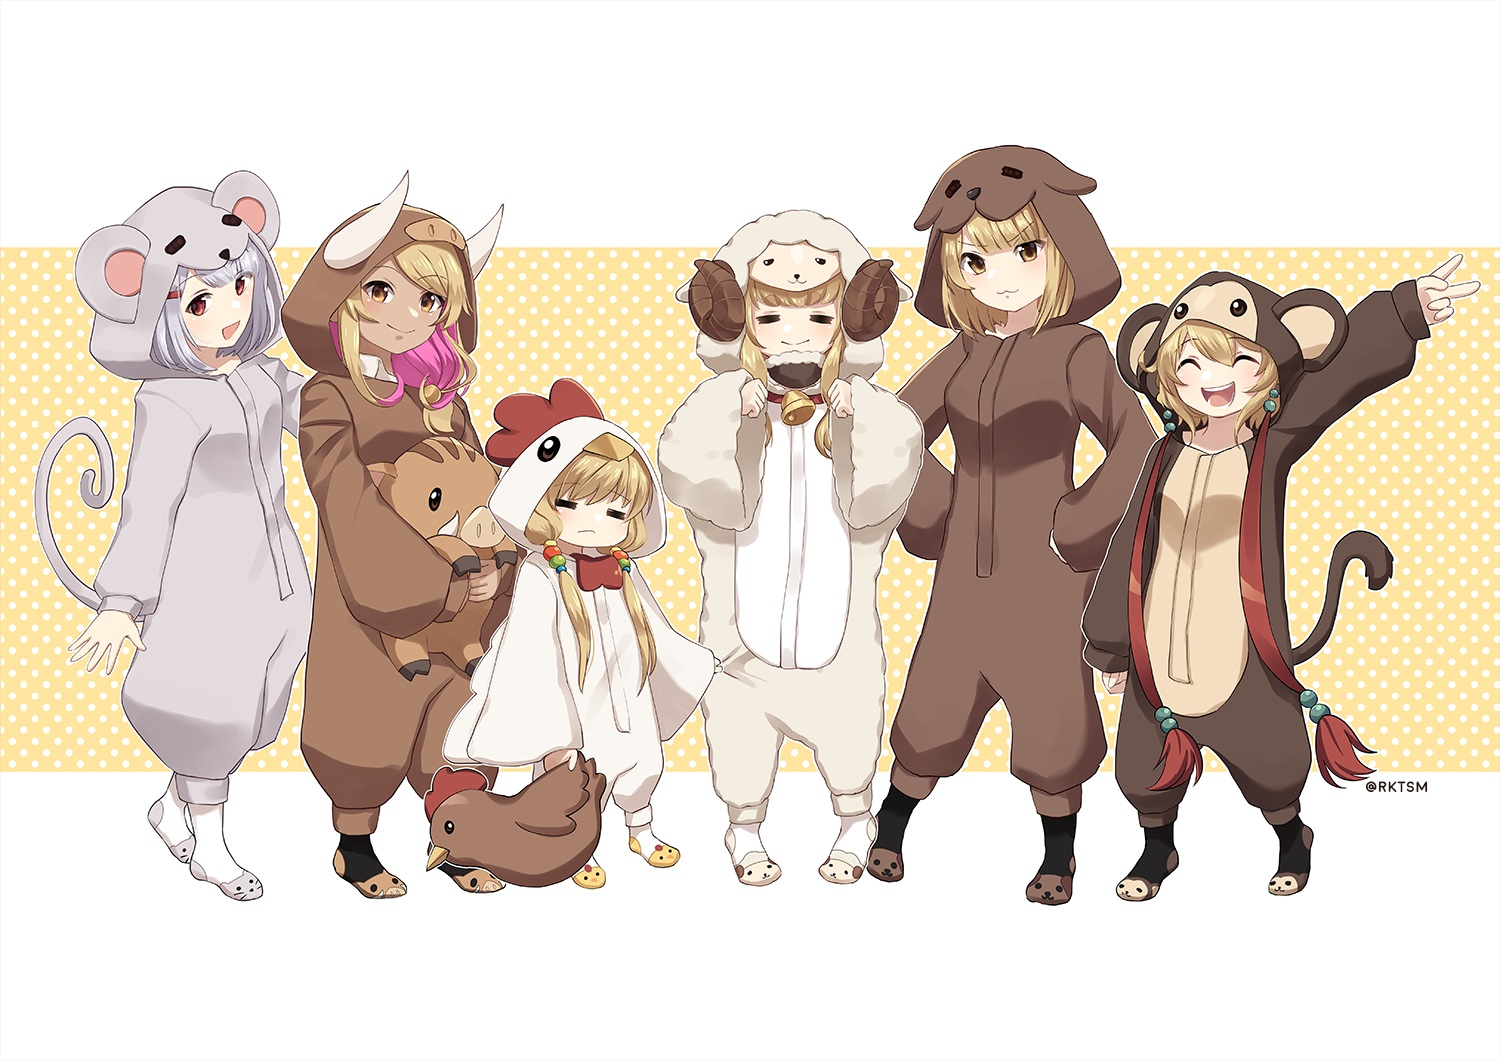 andira_(granblue_fantasy) anila_(granblue_fantasy) animal_ears bell brown_eyes brown_hair cat_smile dark_skin granblue_fantasy gray_hair group hoodie horns kuvira_(granblue_fantasy) loli mahira_(granblue_fantasy) pajamas rktsm short_hair signed tagme_(character) tail twintails vajra_(granblue_fantasy)